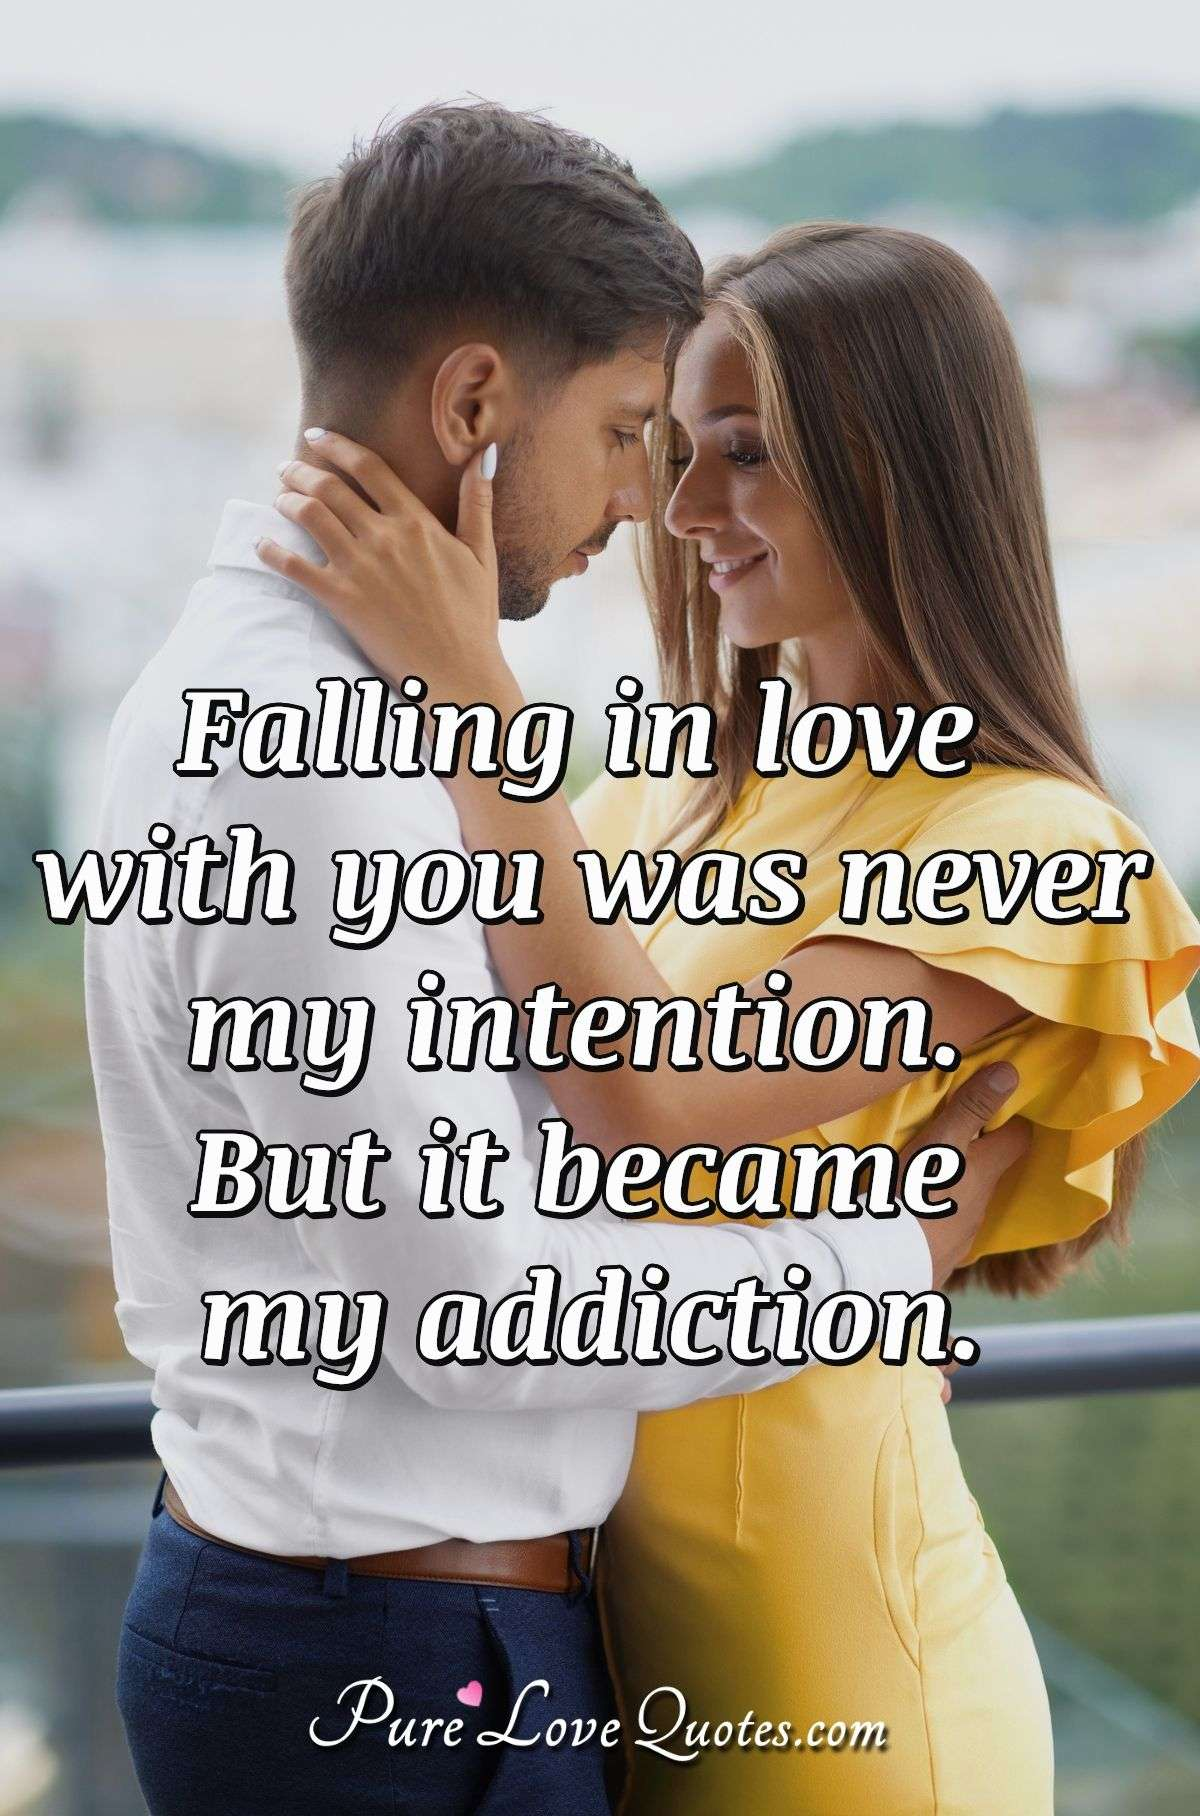 Falling in love with you was never my intention. But it became my